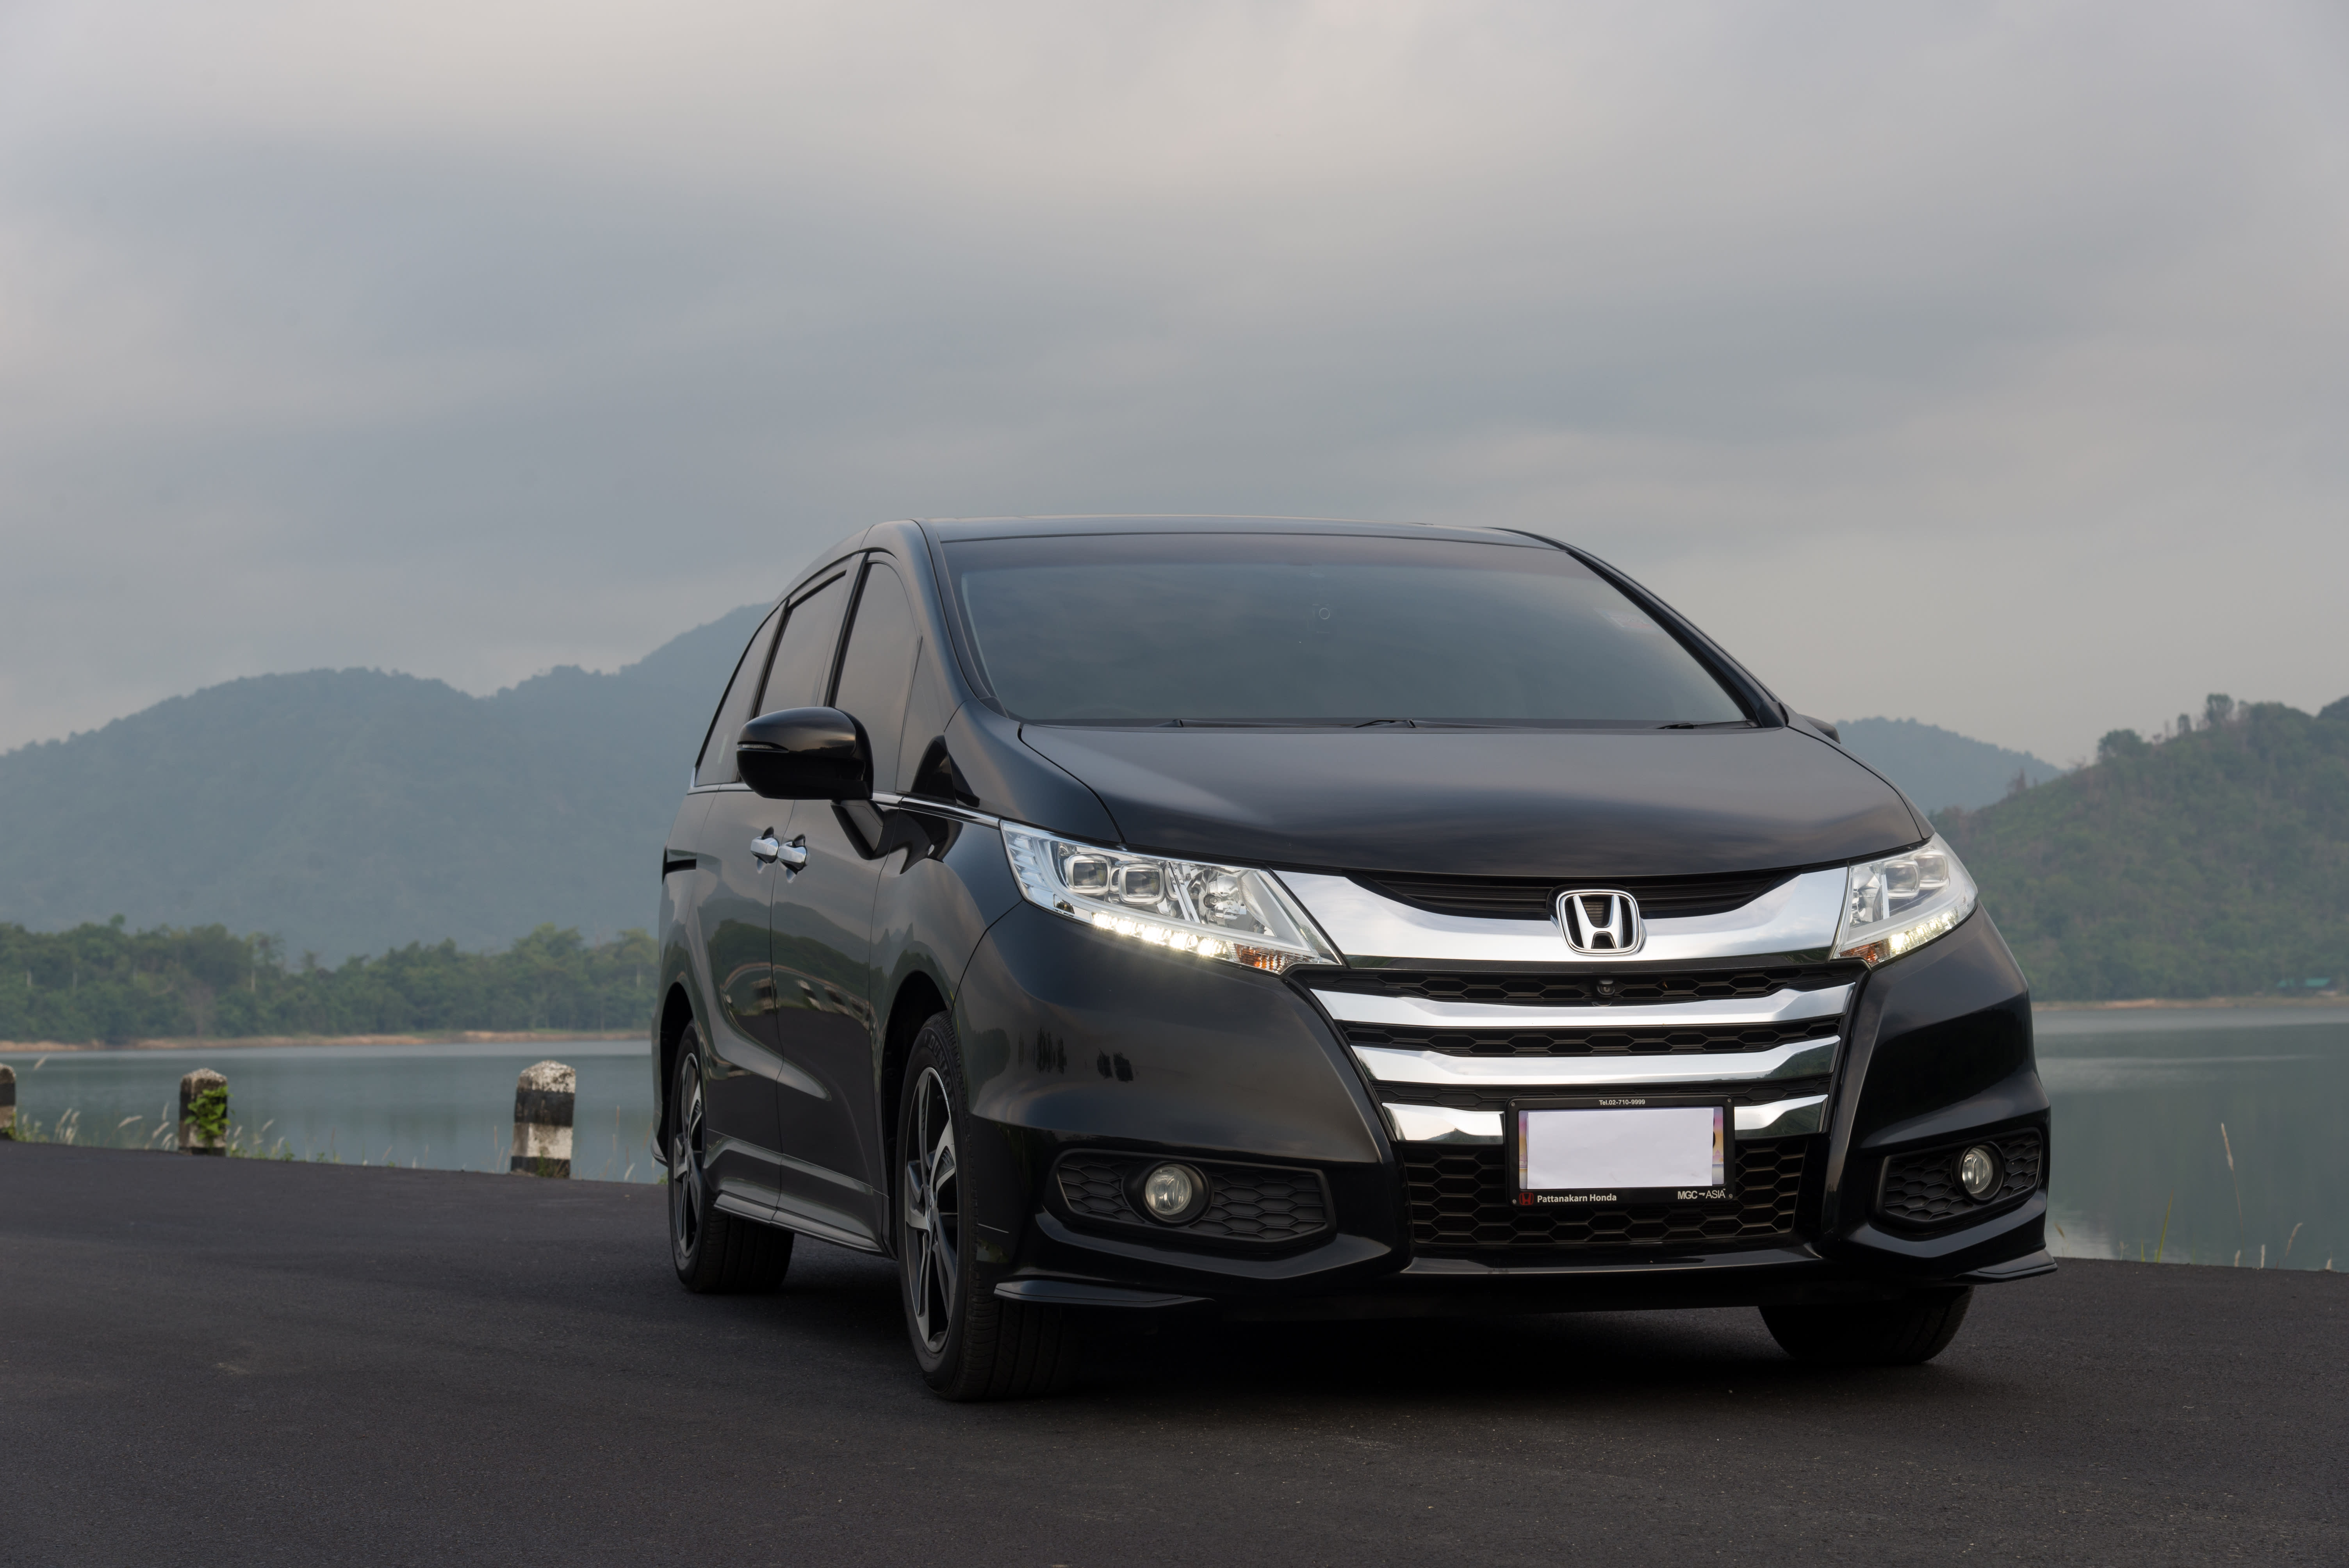 Honda recalls minivans  for rear view camera leak and software glitch